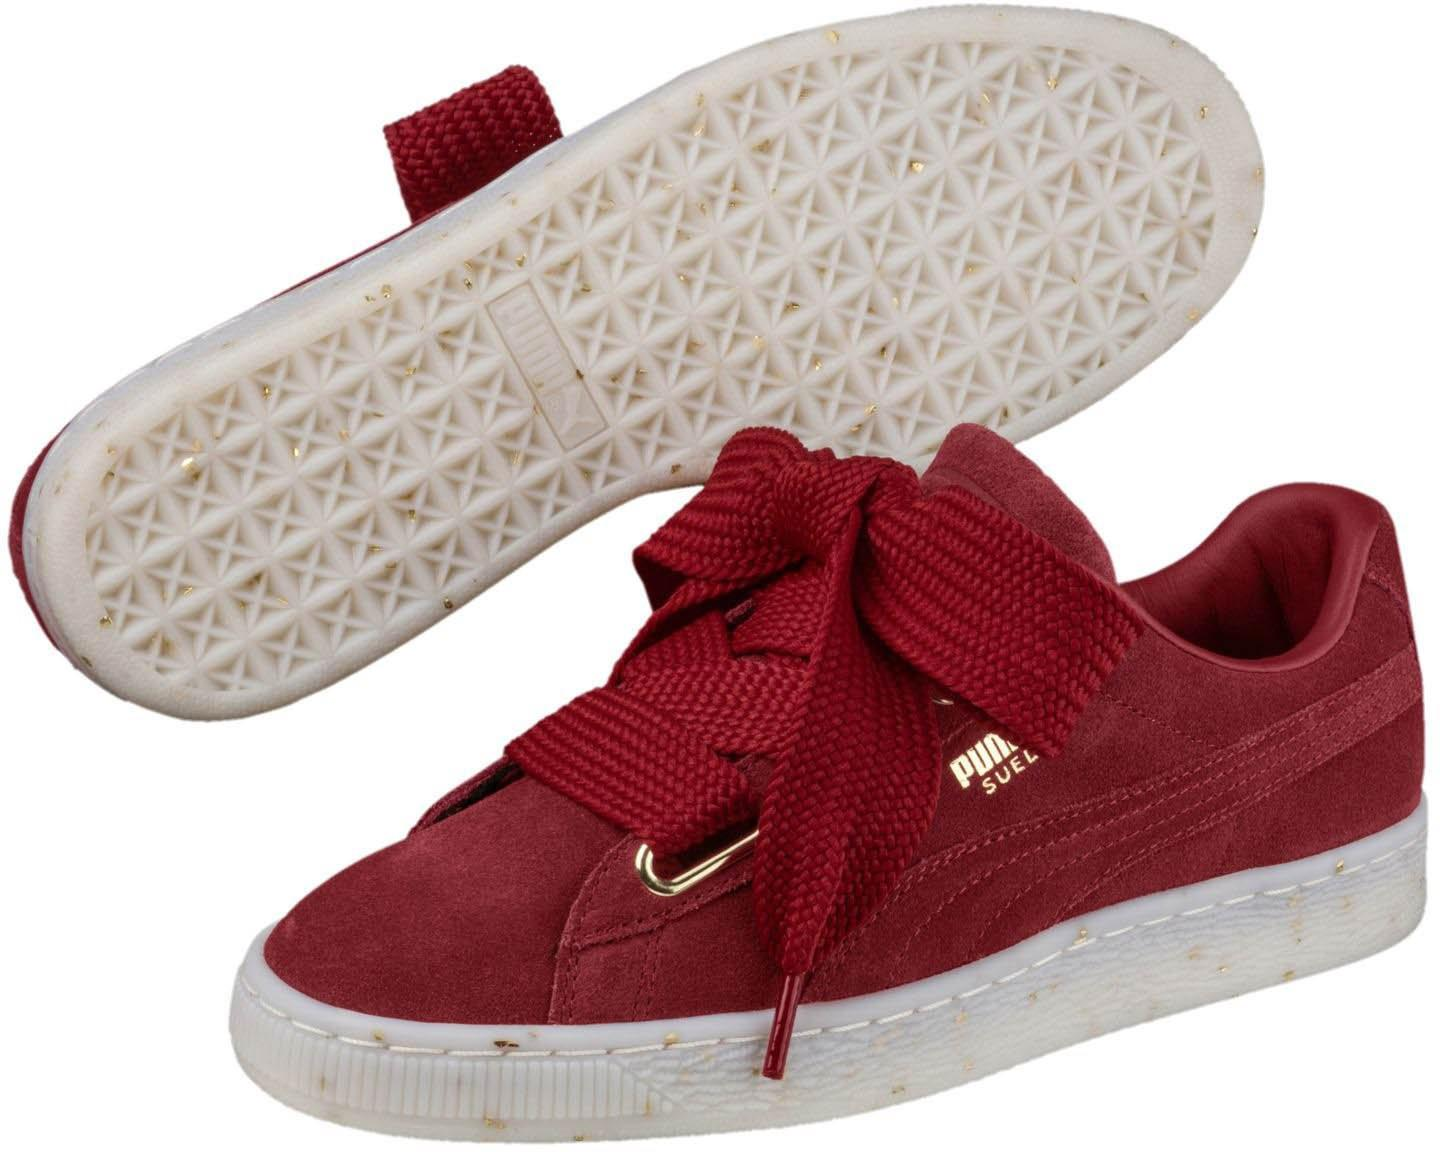 Lyst - PUMA 365561-02   Suede Heart Celebrate Sneaker in Red 367288570cc45